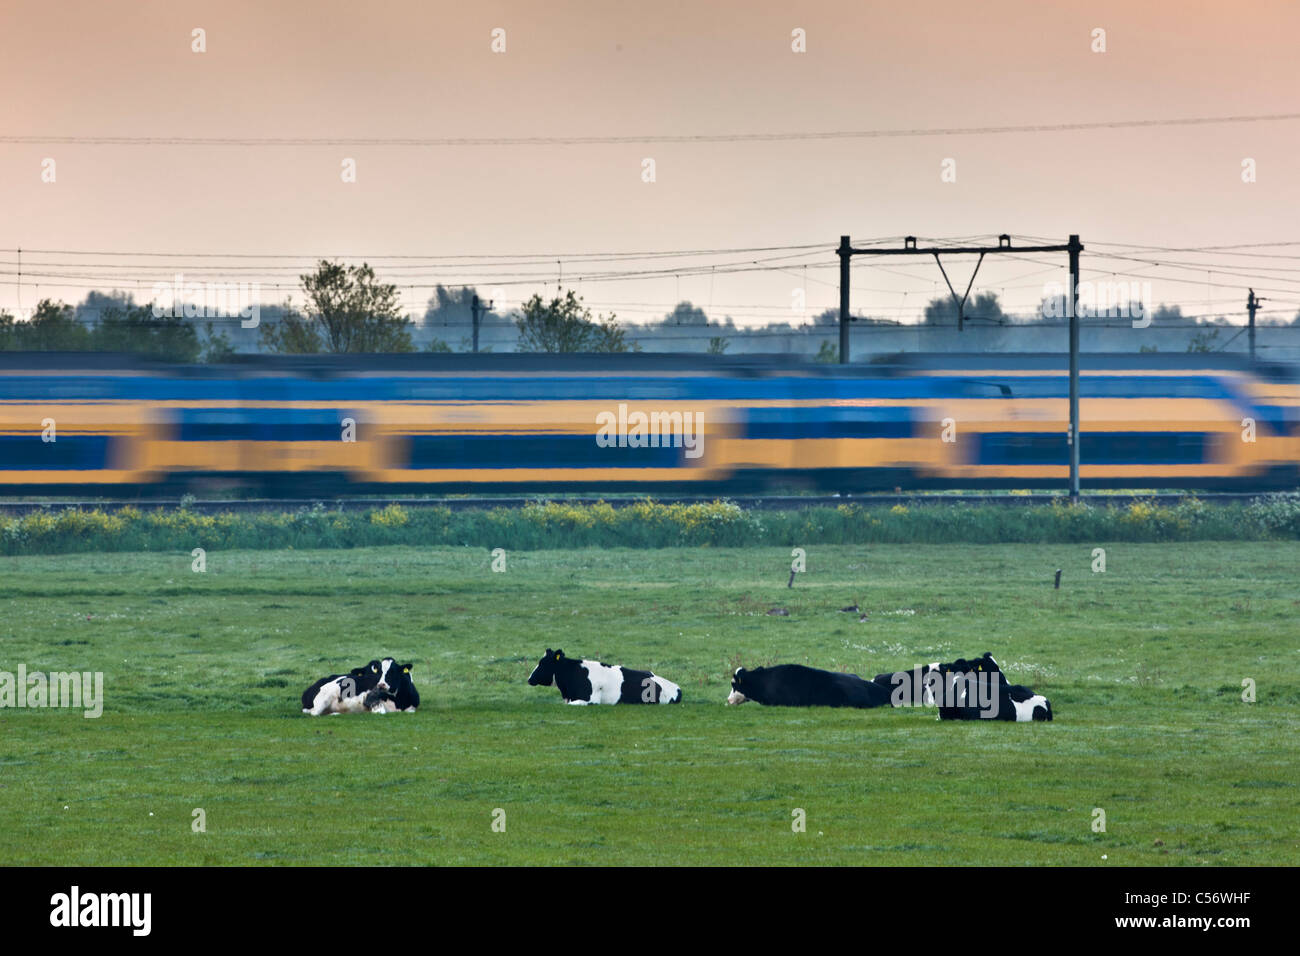 The Netherlands, Weesp, Cows and passing train. - Stock Image